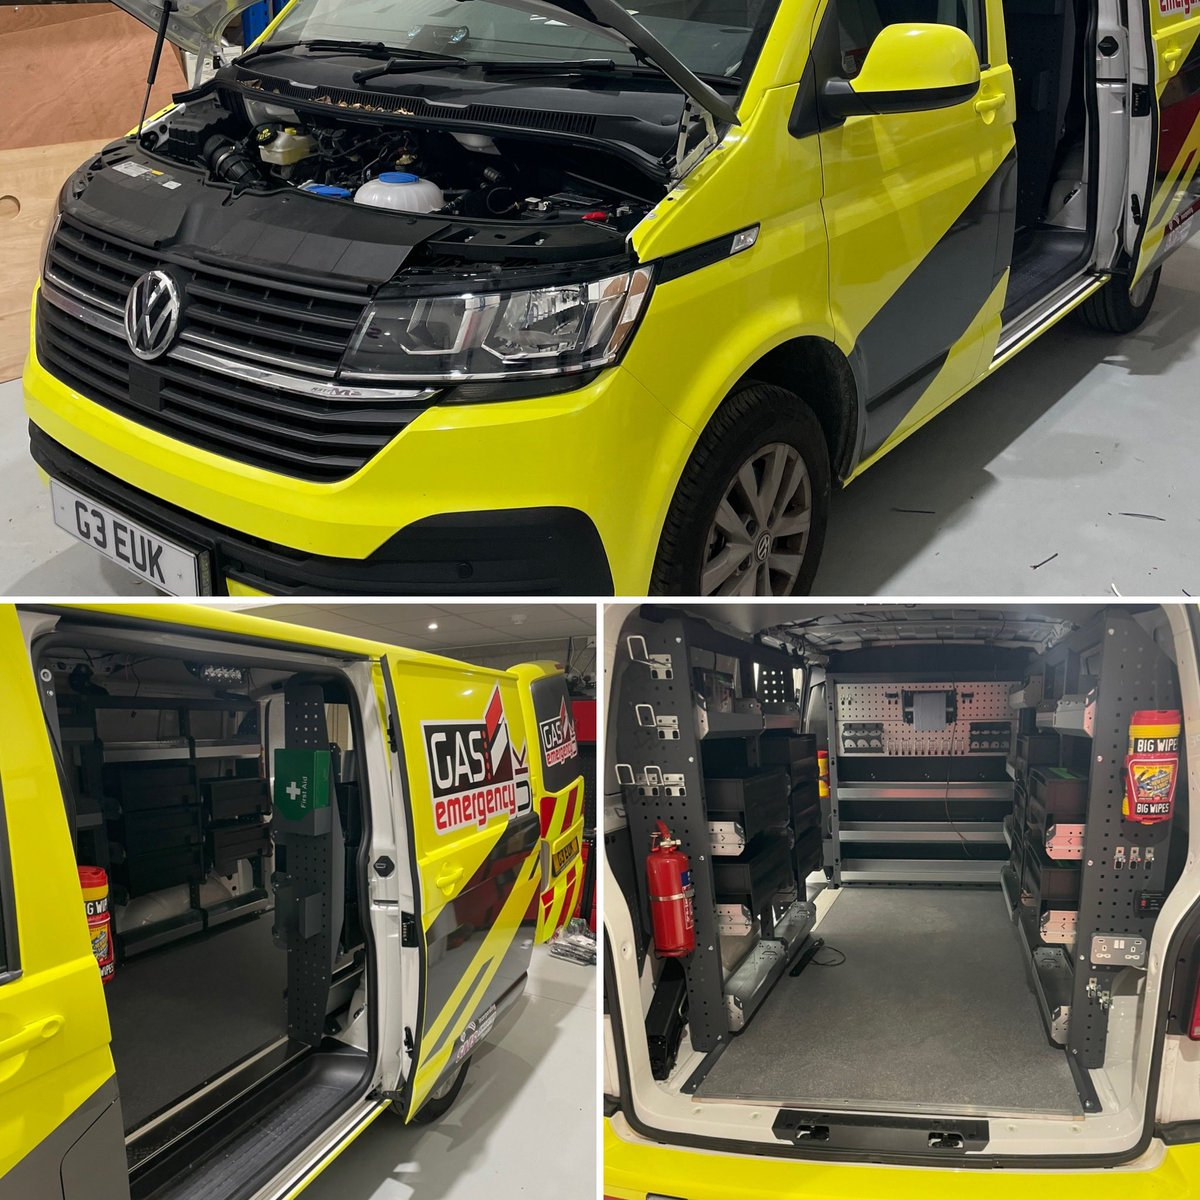 Our new vans in build looking amazing! Our sister company @gas999uk should be proud of what we are building for them!